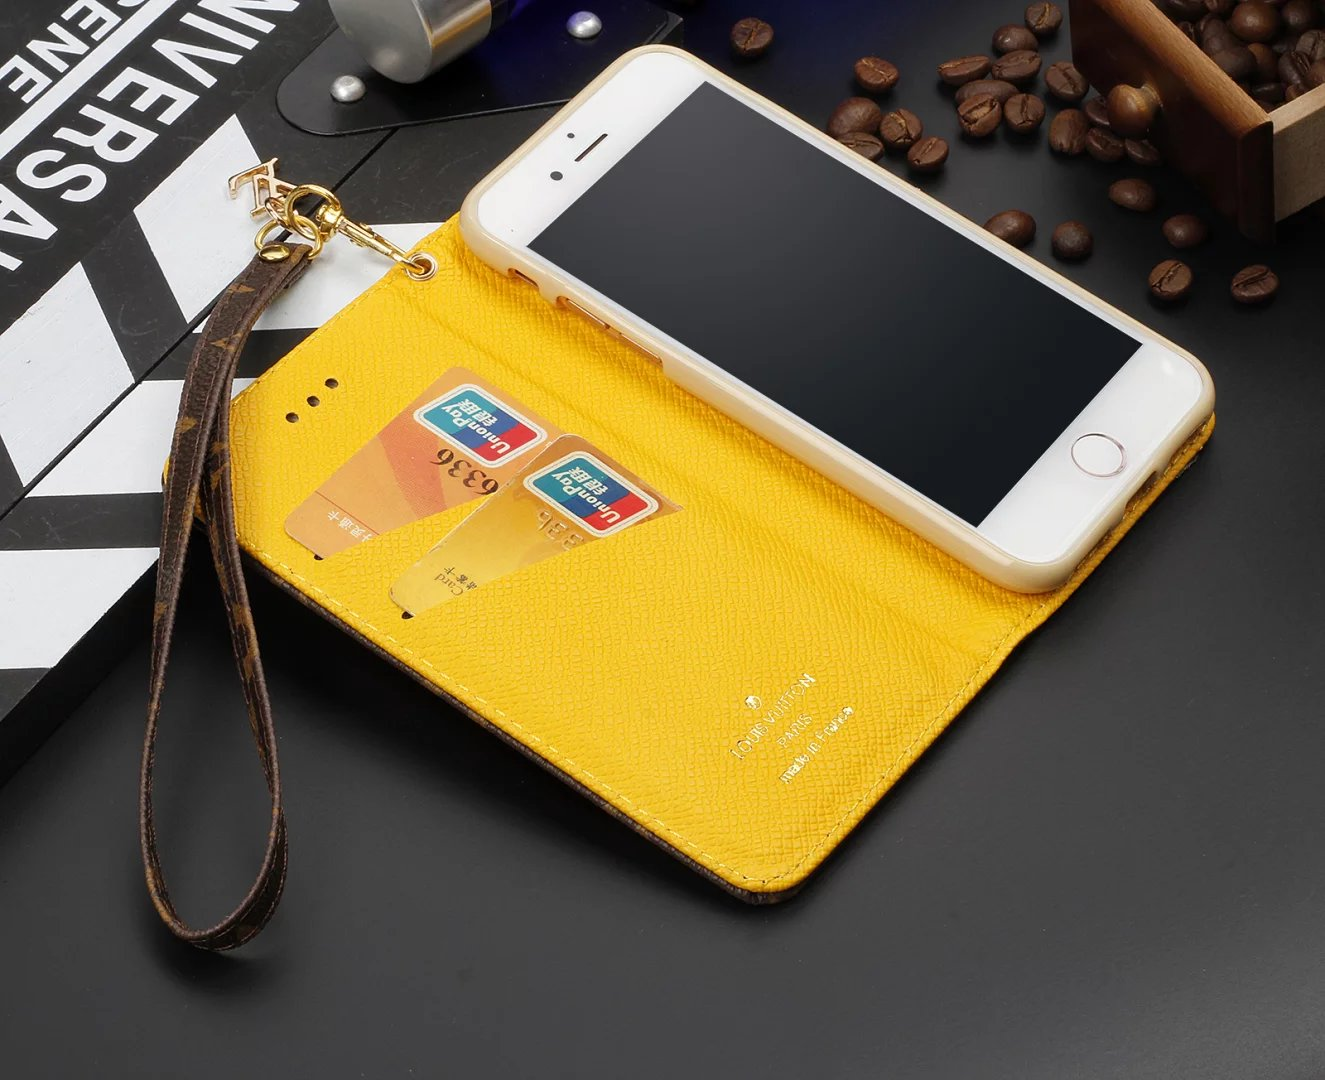 iphone hülle individuell eigene iphone hülle erstellen Louis Vuitton iphone6s hülle iphone 6 veröffentlichung apple leder ca6s iphone 6s apple ca6s iphone 6s iphone das neueste original apple iphone hülle individuelle iphone hülle